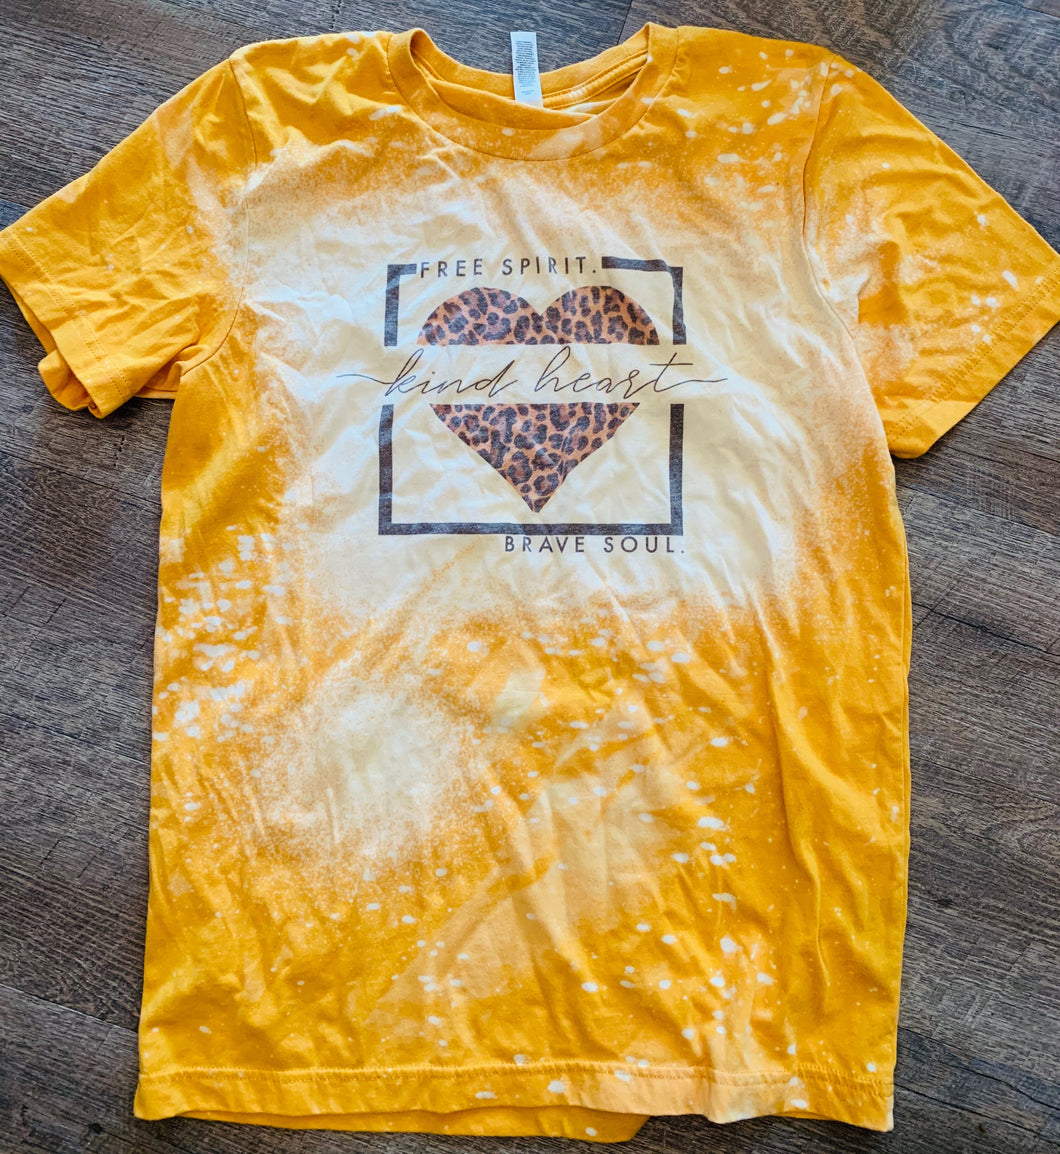 Free Spirit. Kind Heart. Brave Soul. Yellow Bleached Tee. - Mavictoria Designs Hot Press Express